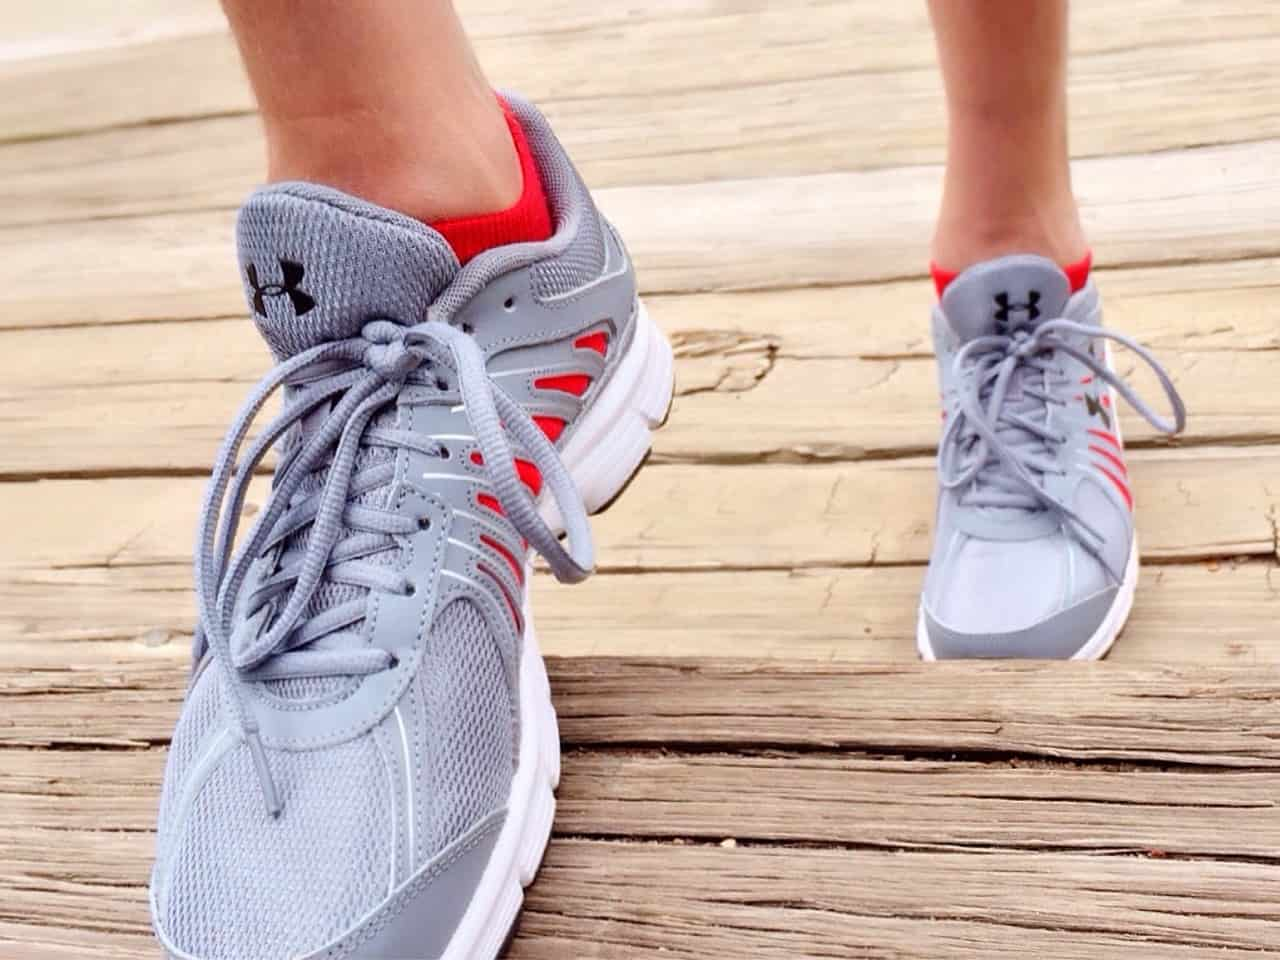 Here's When You Should Replace Your Running Shoes – The 4 Signs